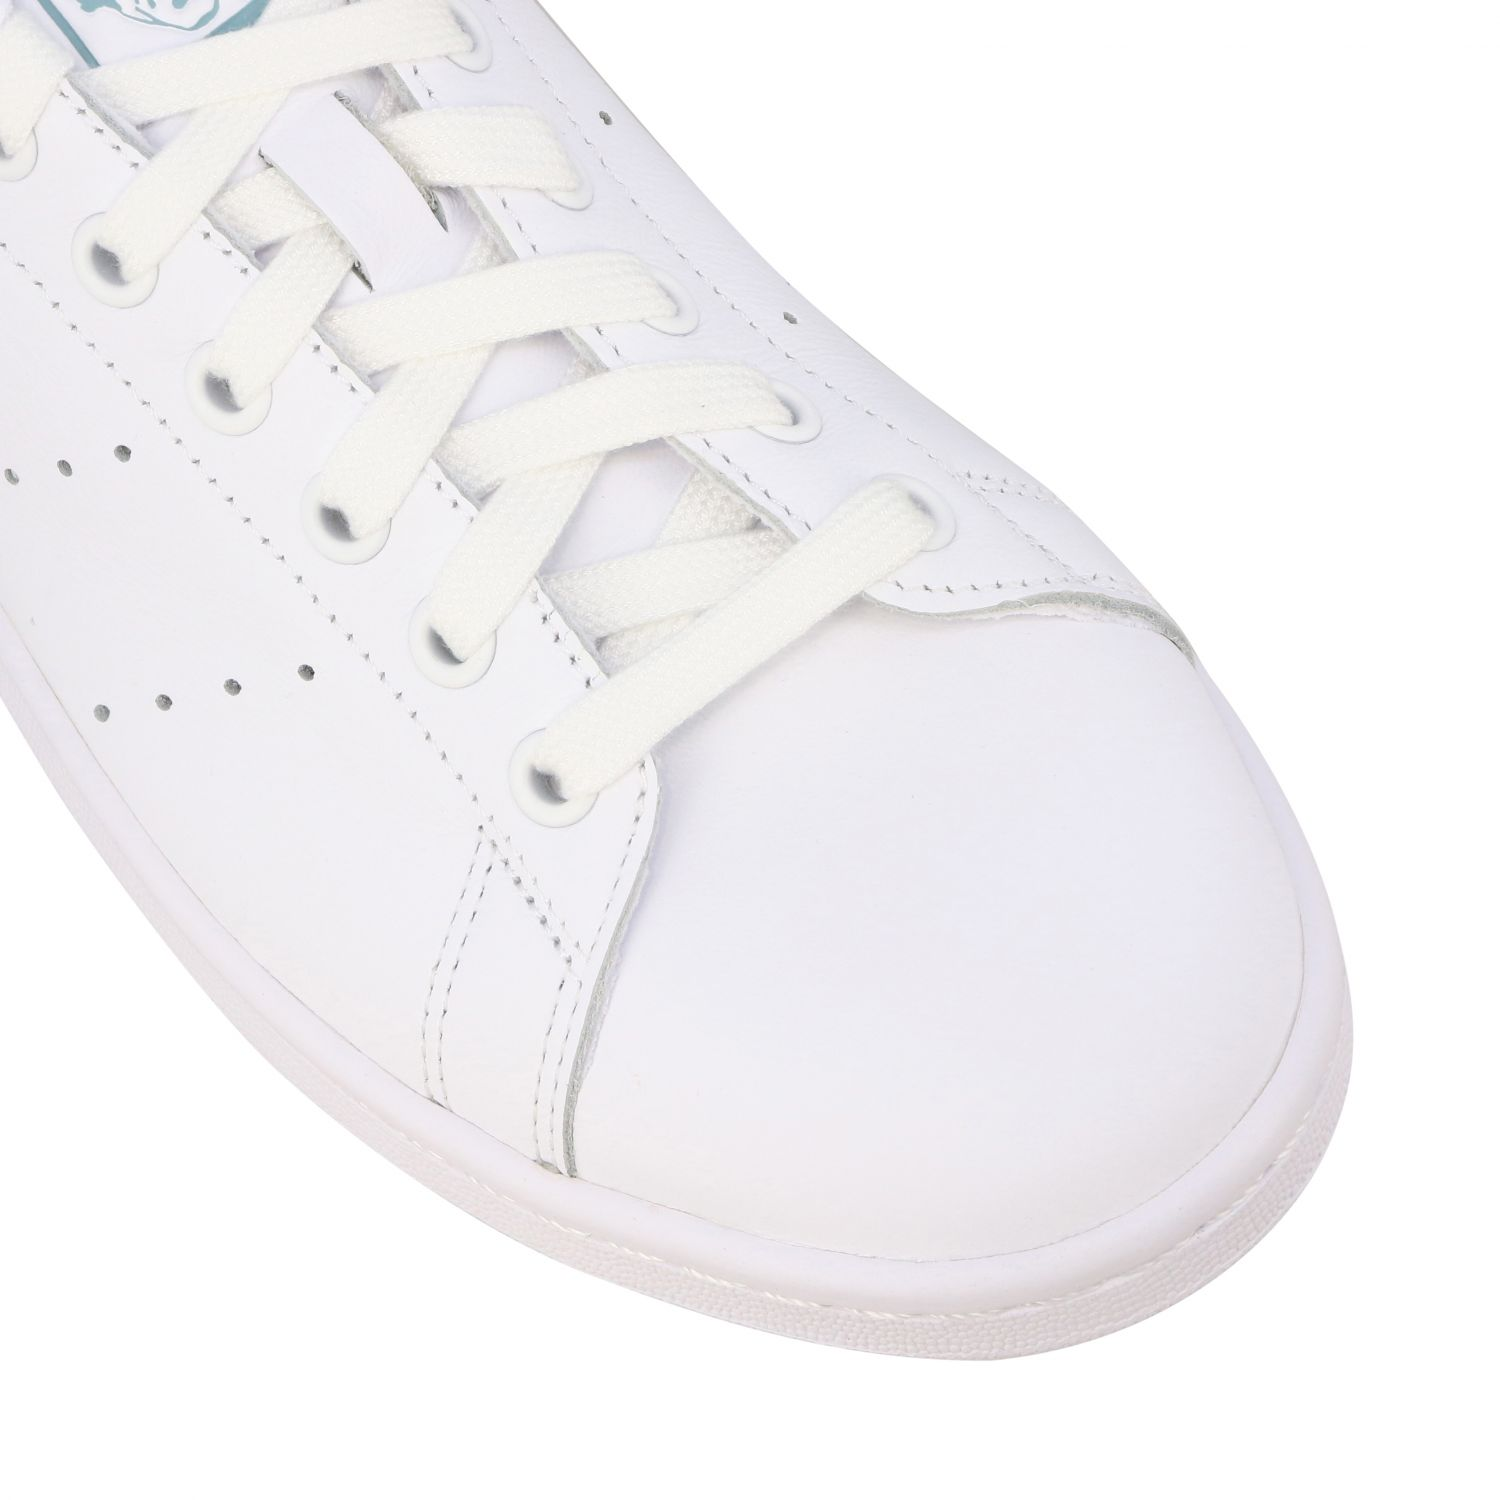 Sneakers Adidas Originals: Shoes men Adidas Originals white 4